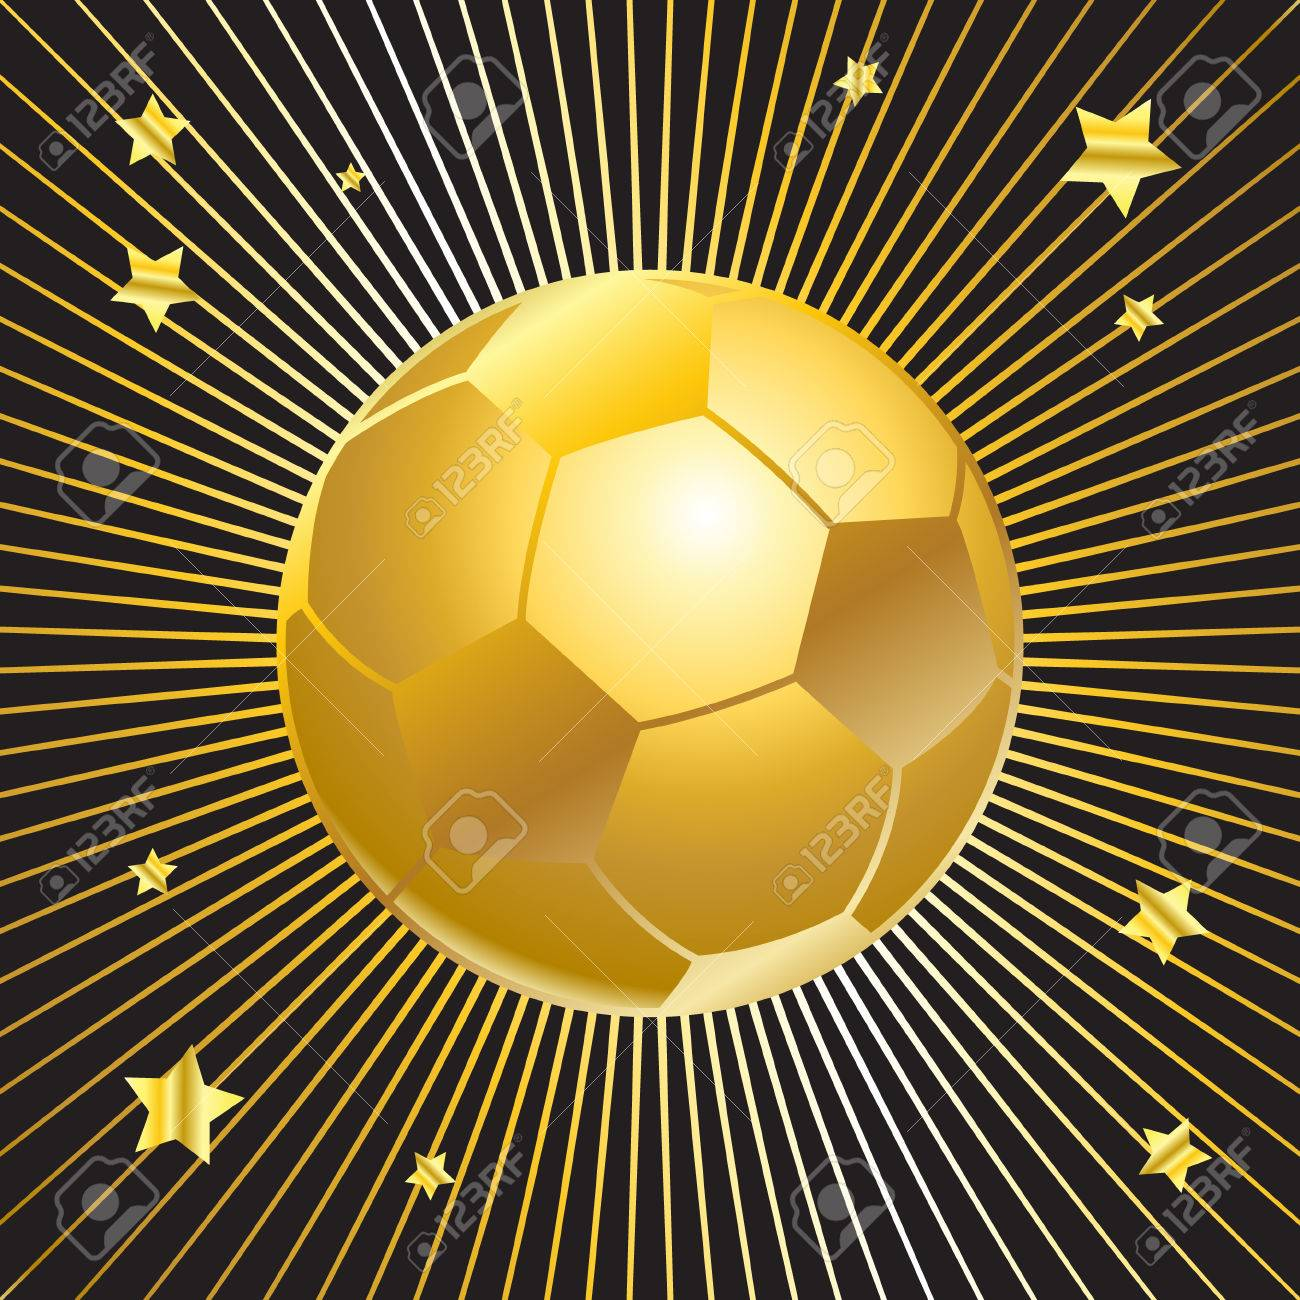 Ball Soccer Ball Football Ball Soccer Ball Winner Gold Soccer Royalty Free Cliparts Vectors And Stock Illustration Image 64865892